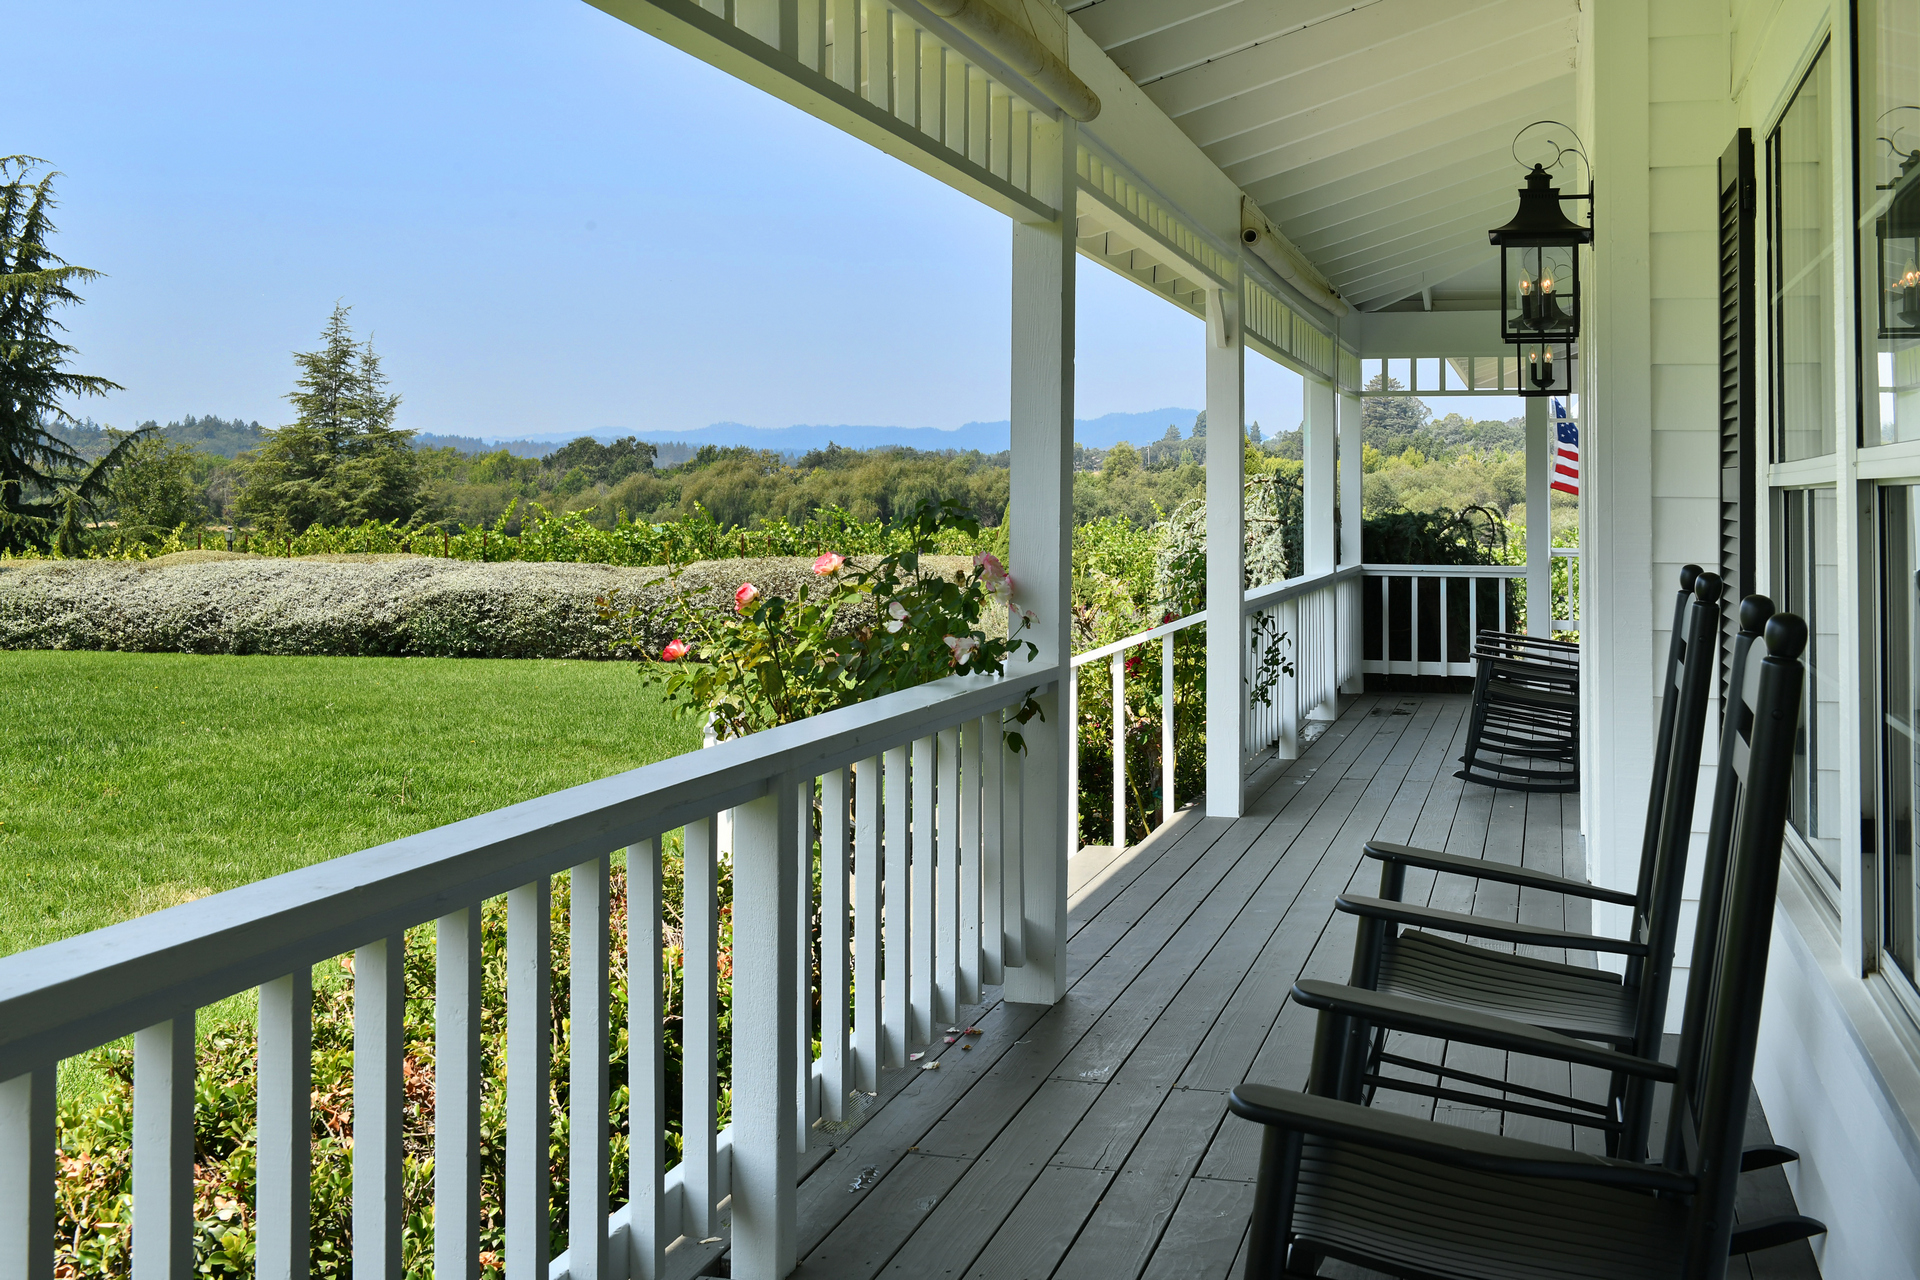 Rocking chairs on porch looking at view